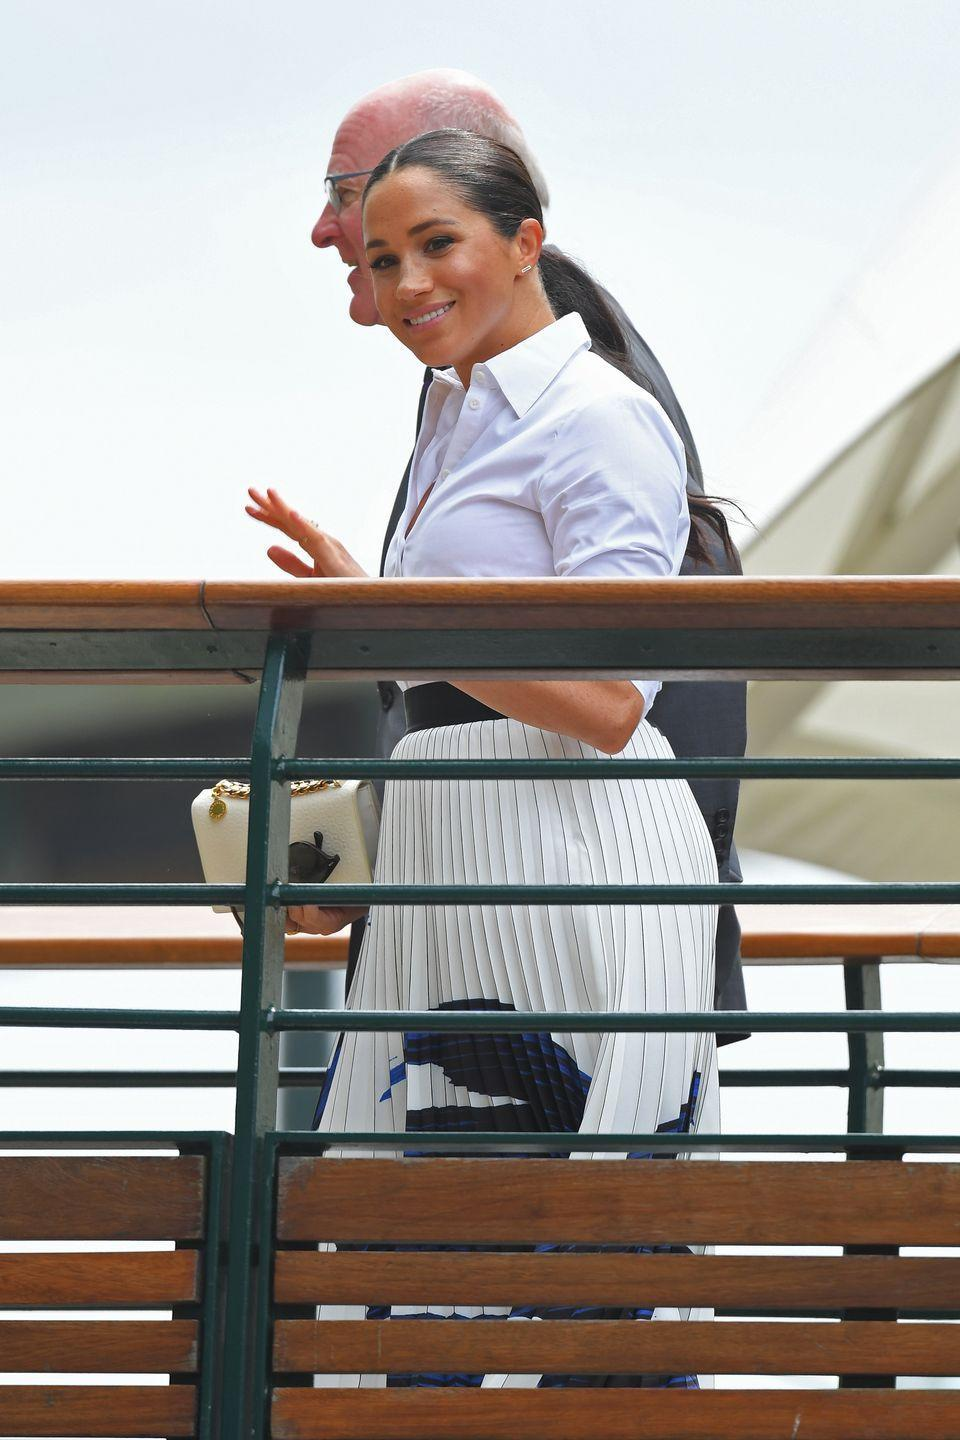 <p>The Duchess of Sussex arrived at Wimbledon in a crisp which collared shirt, which she paired with a blue and white pleated skirt. </p>